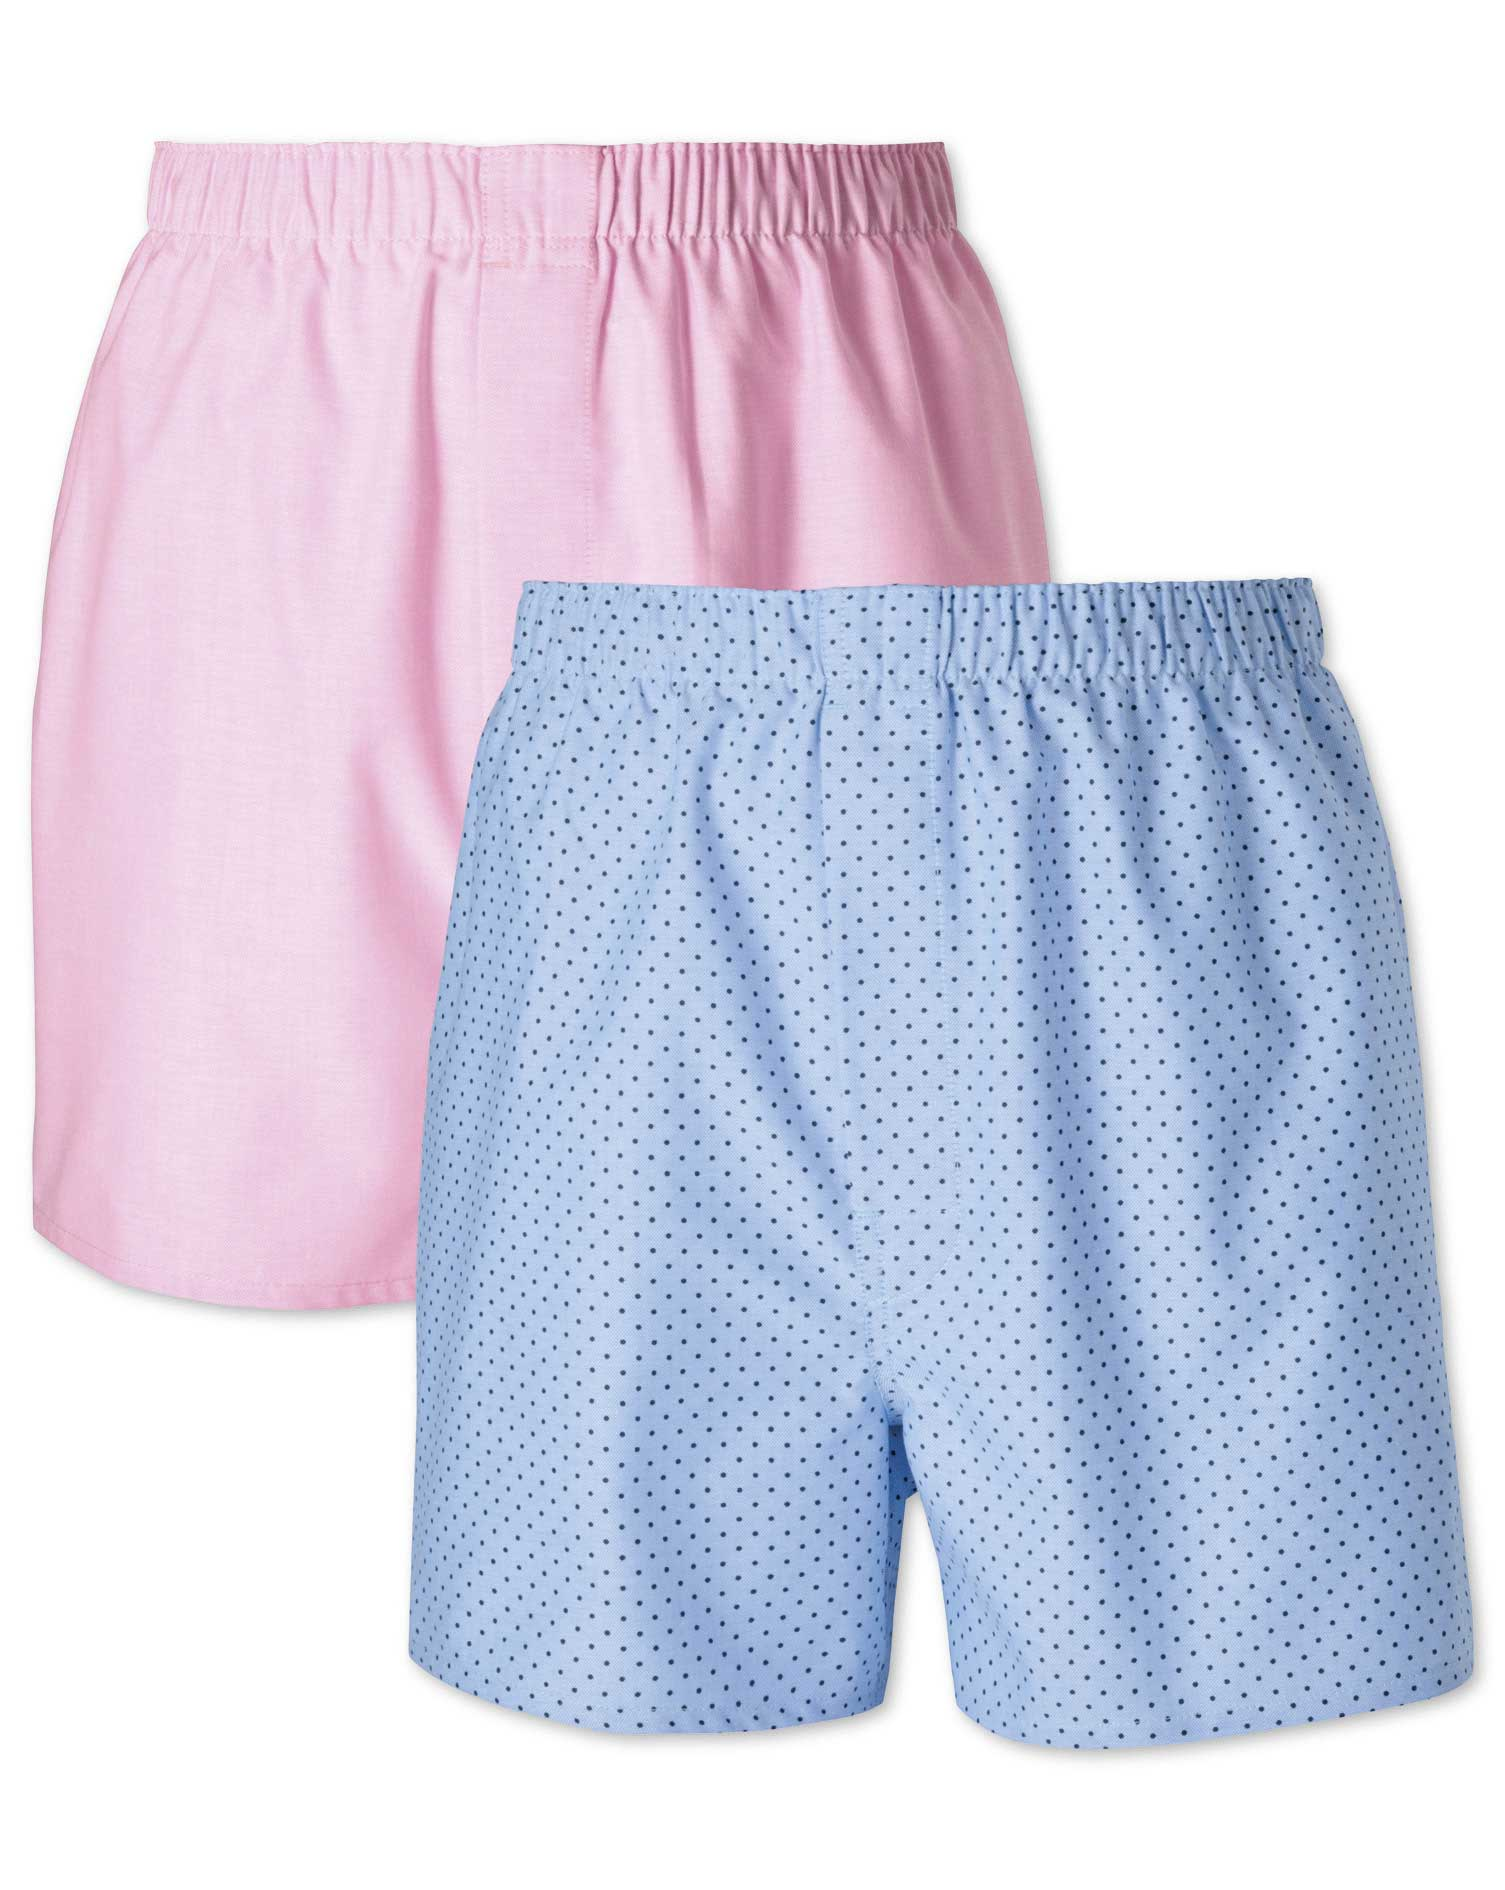 Pink and Sky Dot 2 Pack Boxers Size XL by Charles Tyrwhitt